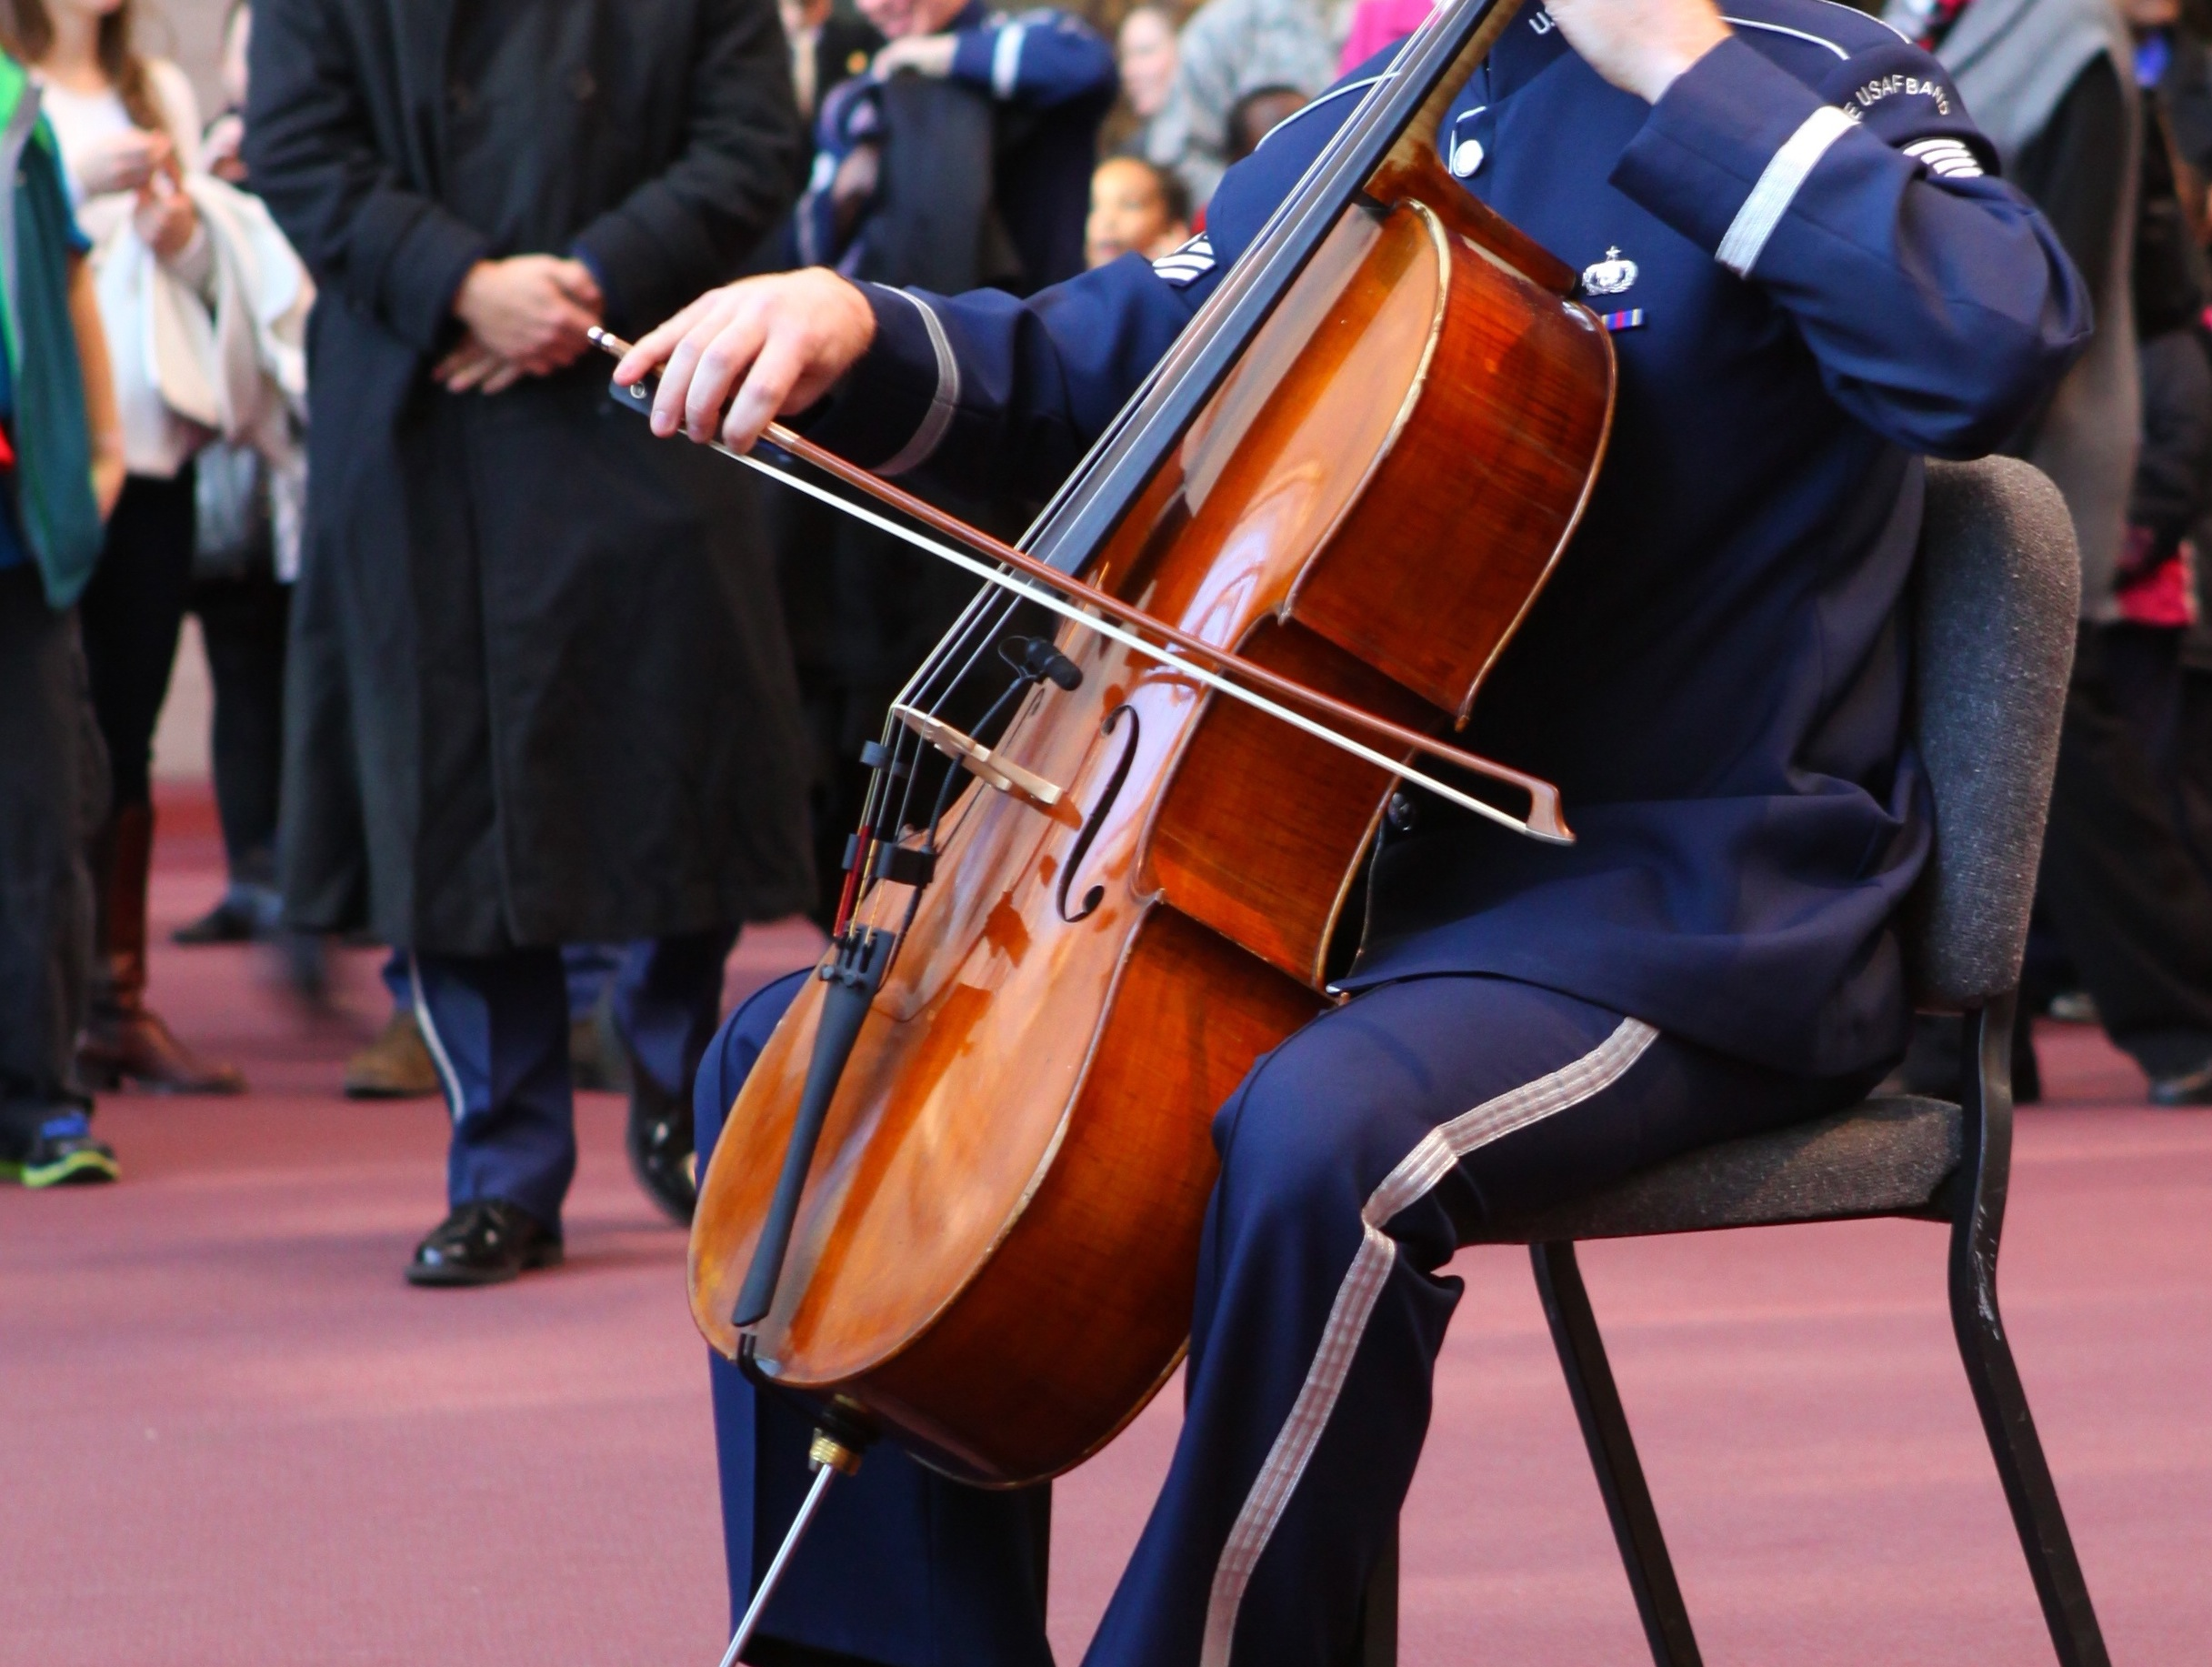 A member of the Air Force Band plays a cello.